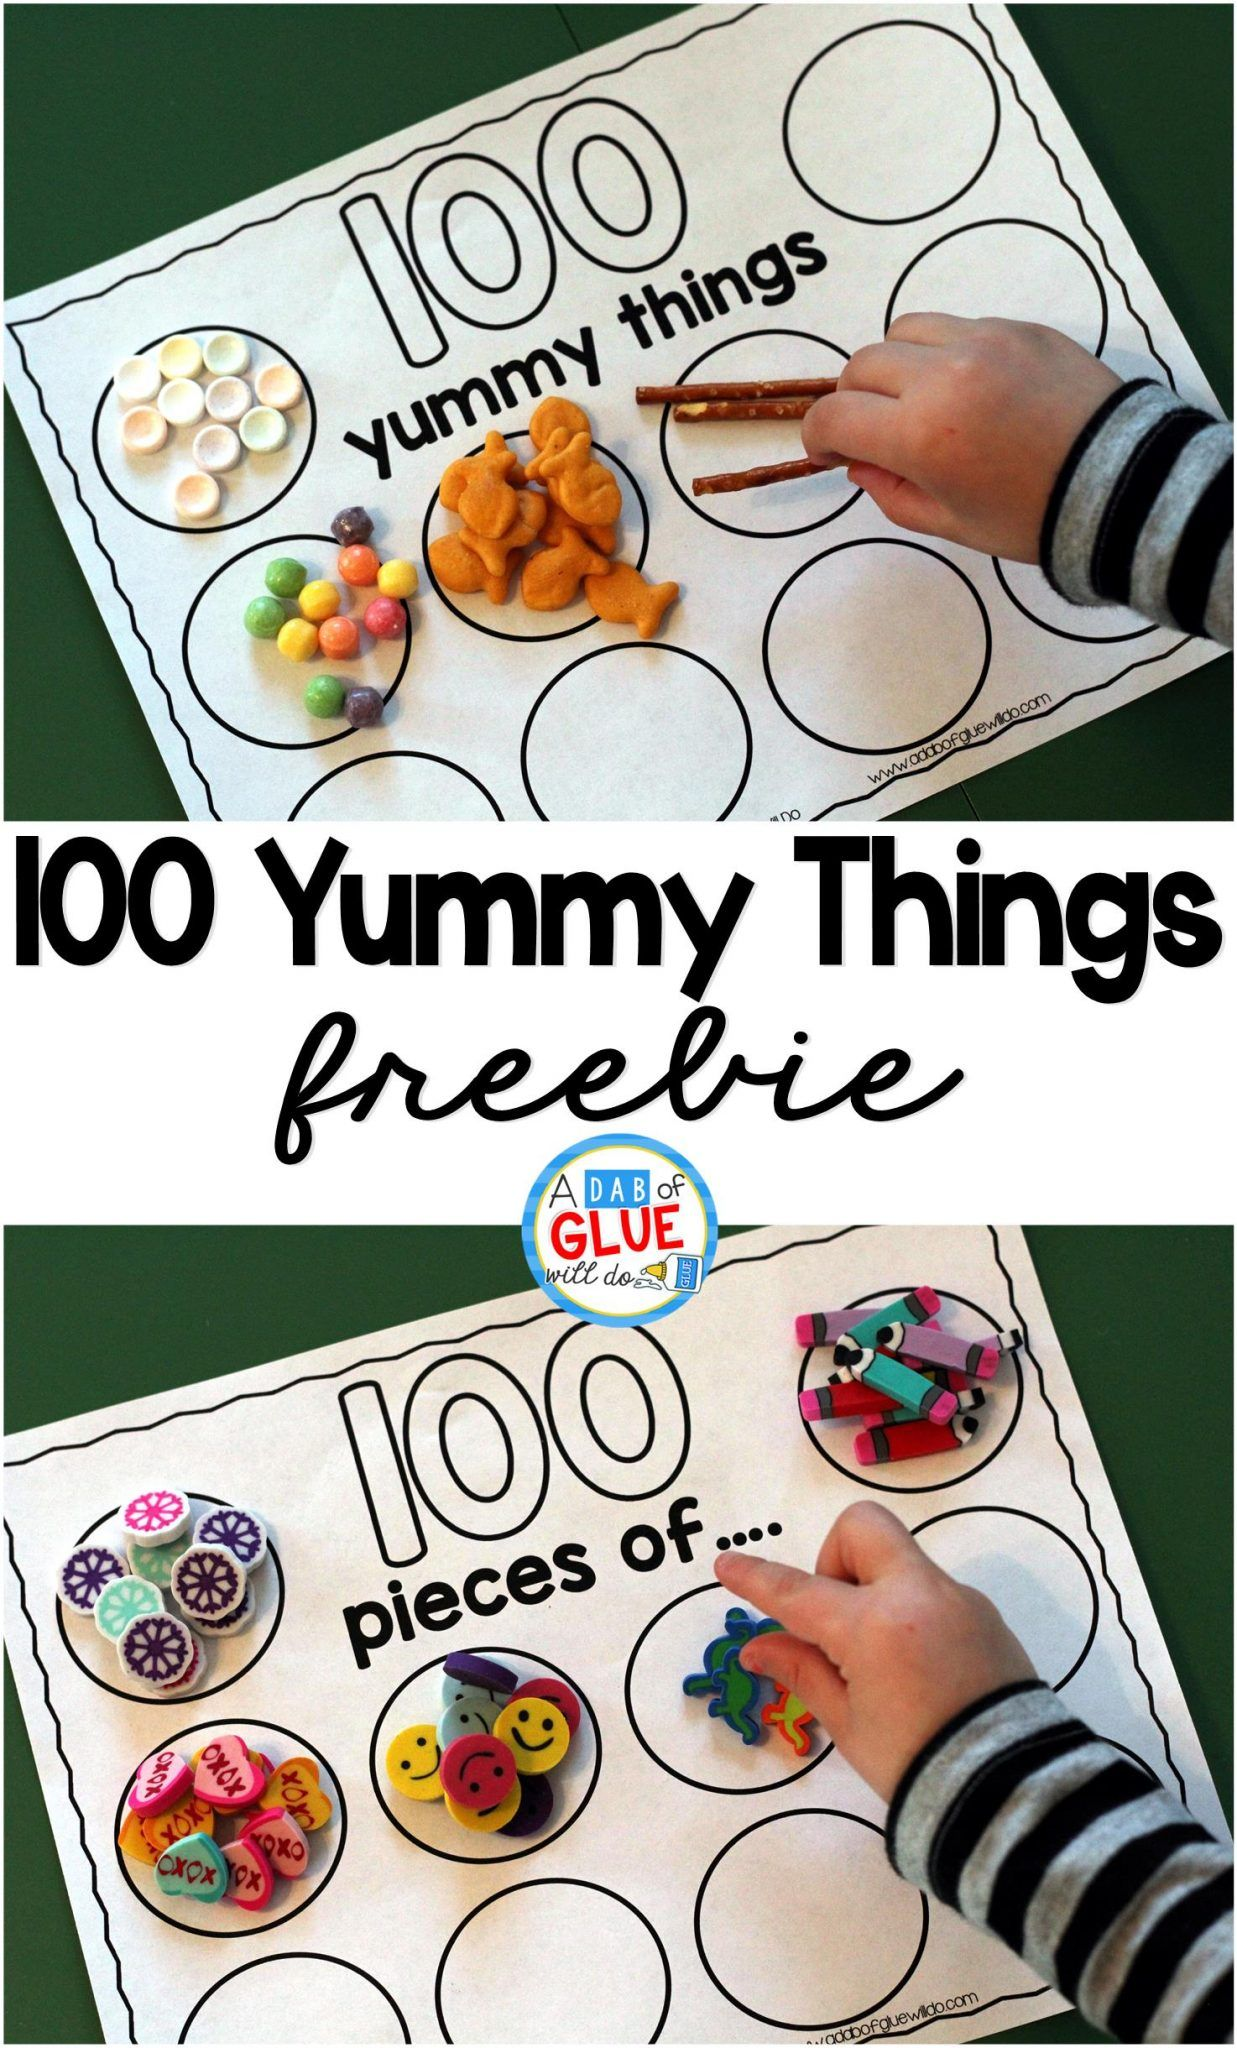 5 Best Yummy Things Kindergarten Images On All About